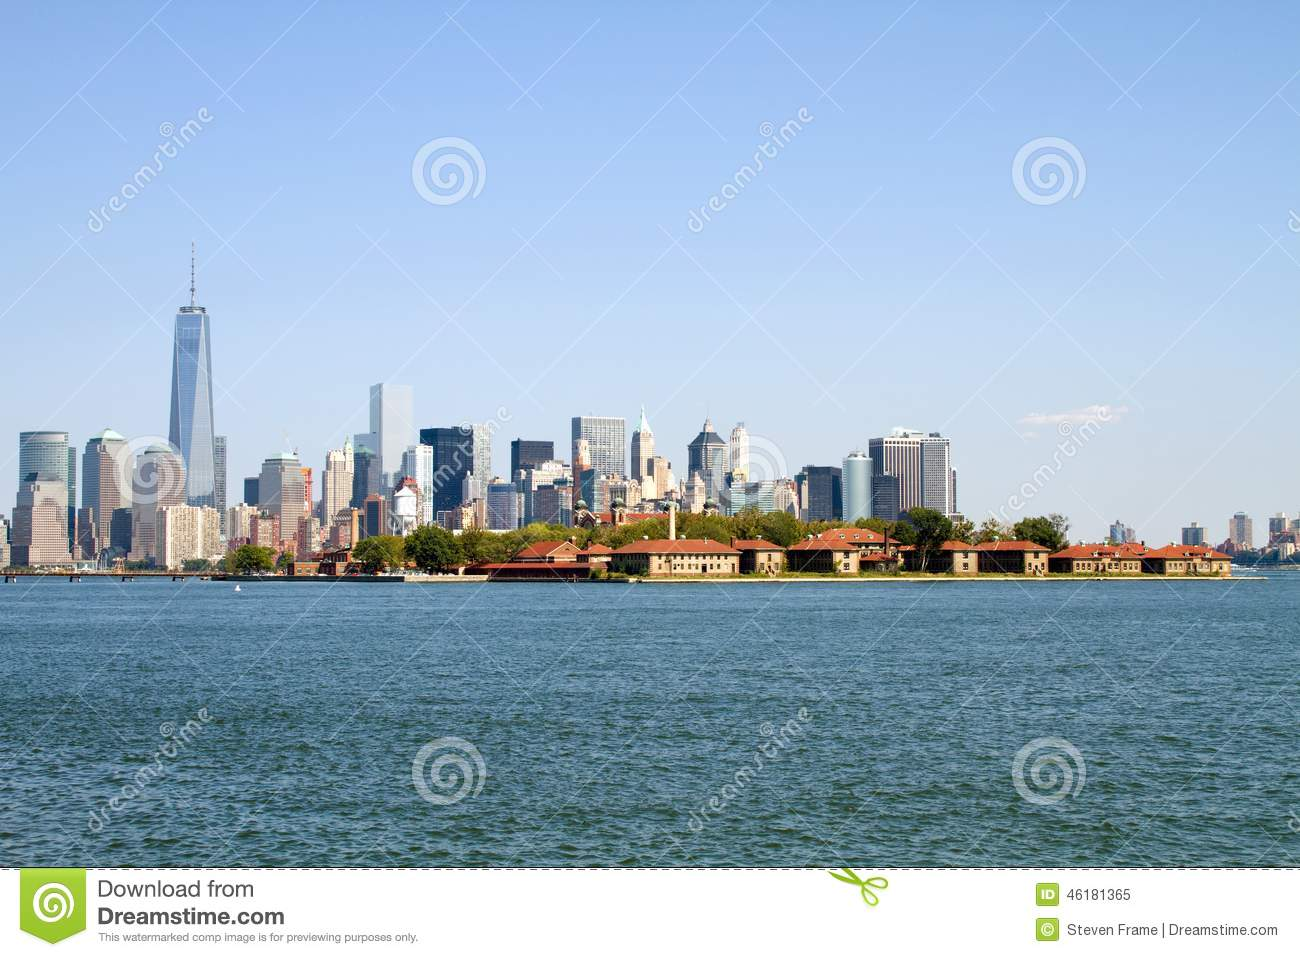 ellis island new york city stock image image of tourism 46181365. Black Bedroom Furniture Sets. Home Design Ideas